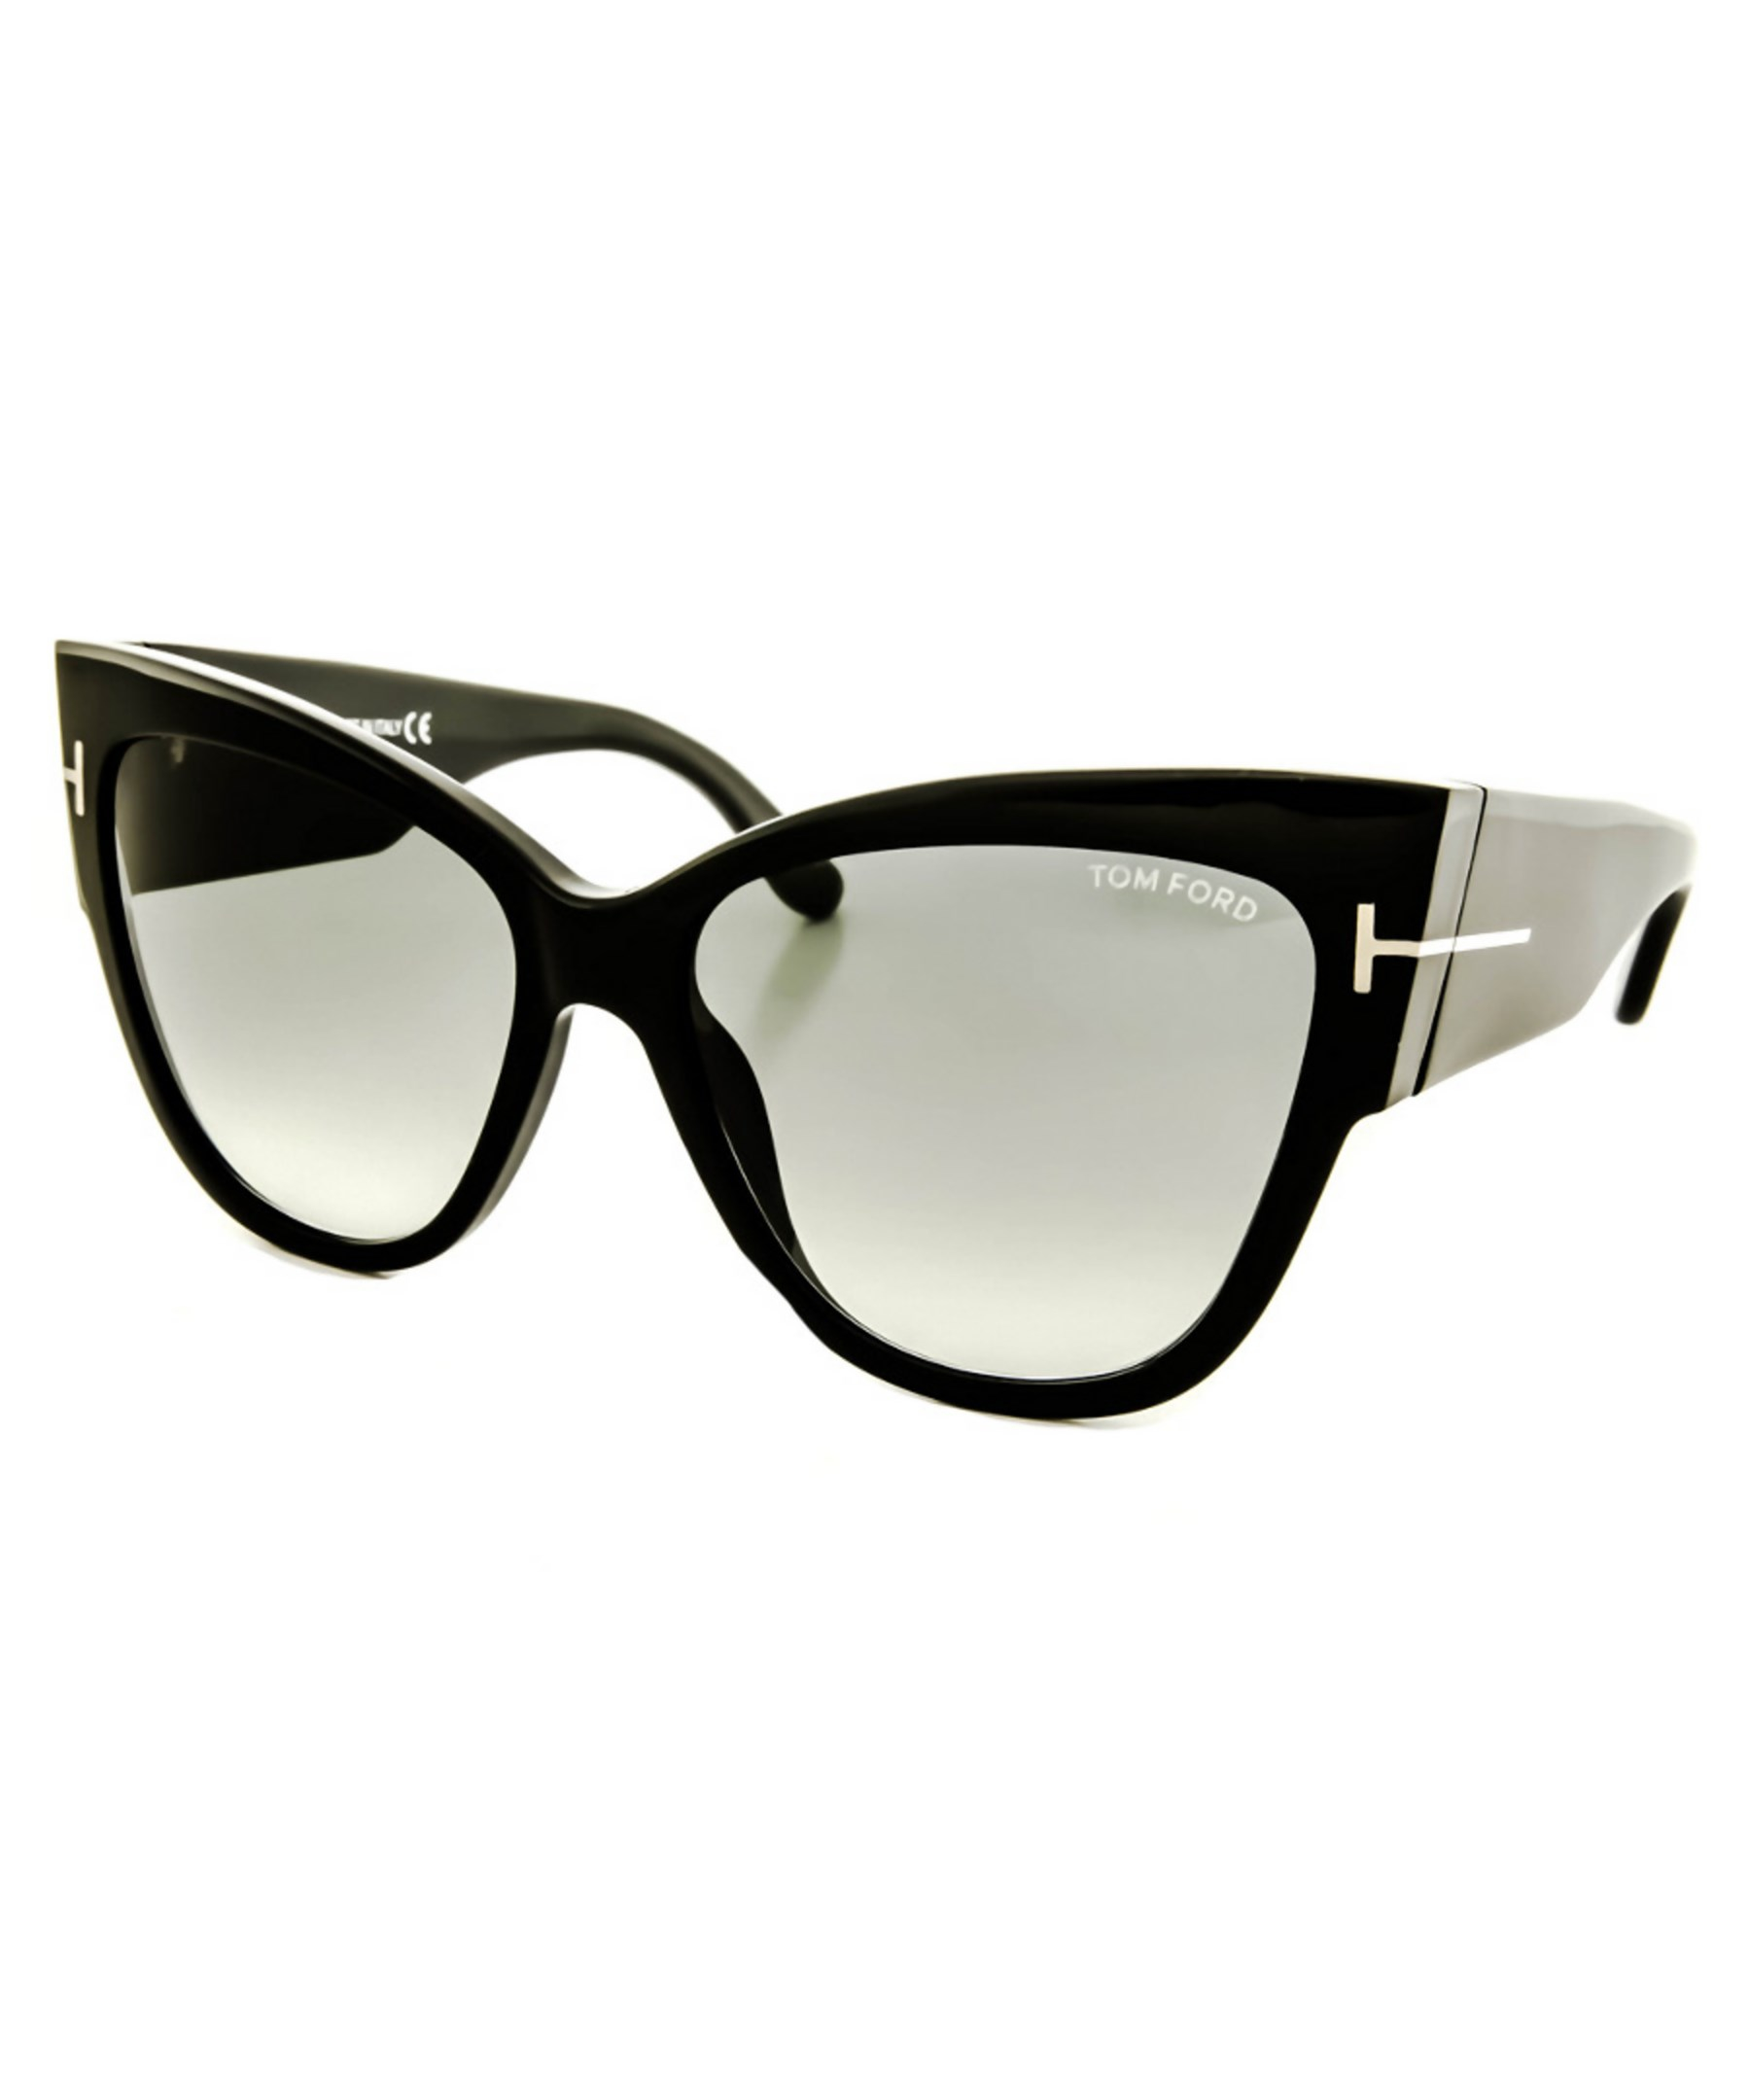 tom ford s ft0371 f sunglasses in black lyst